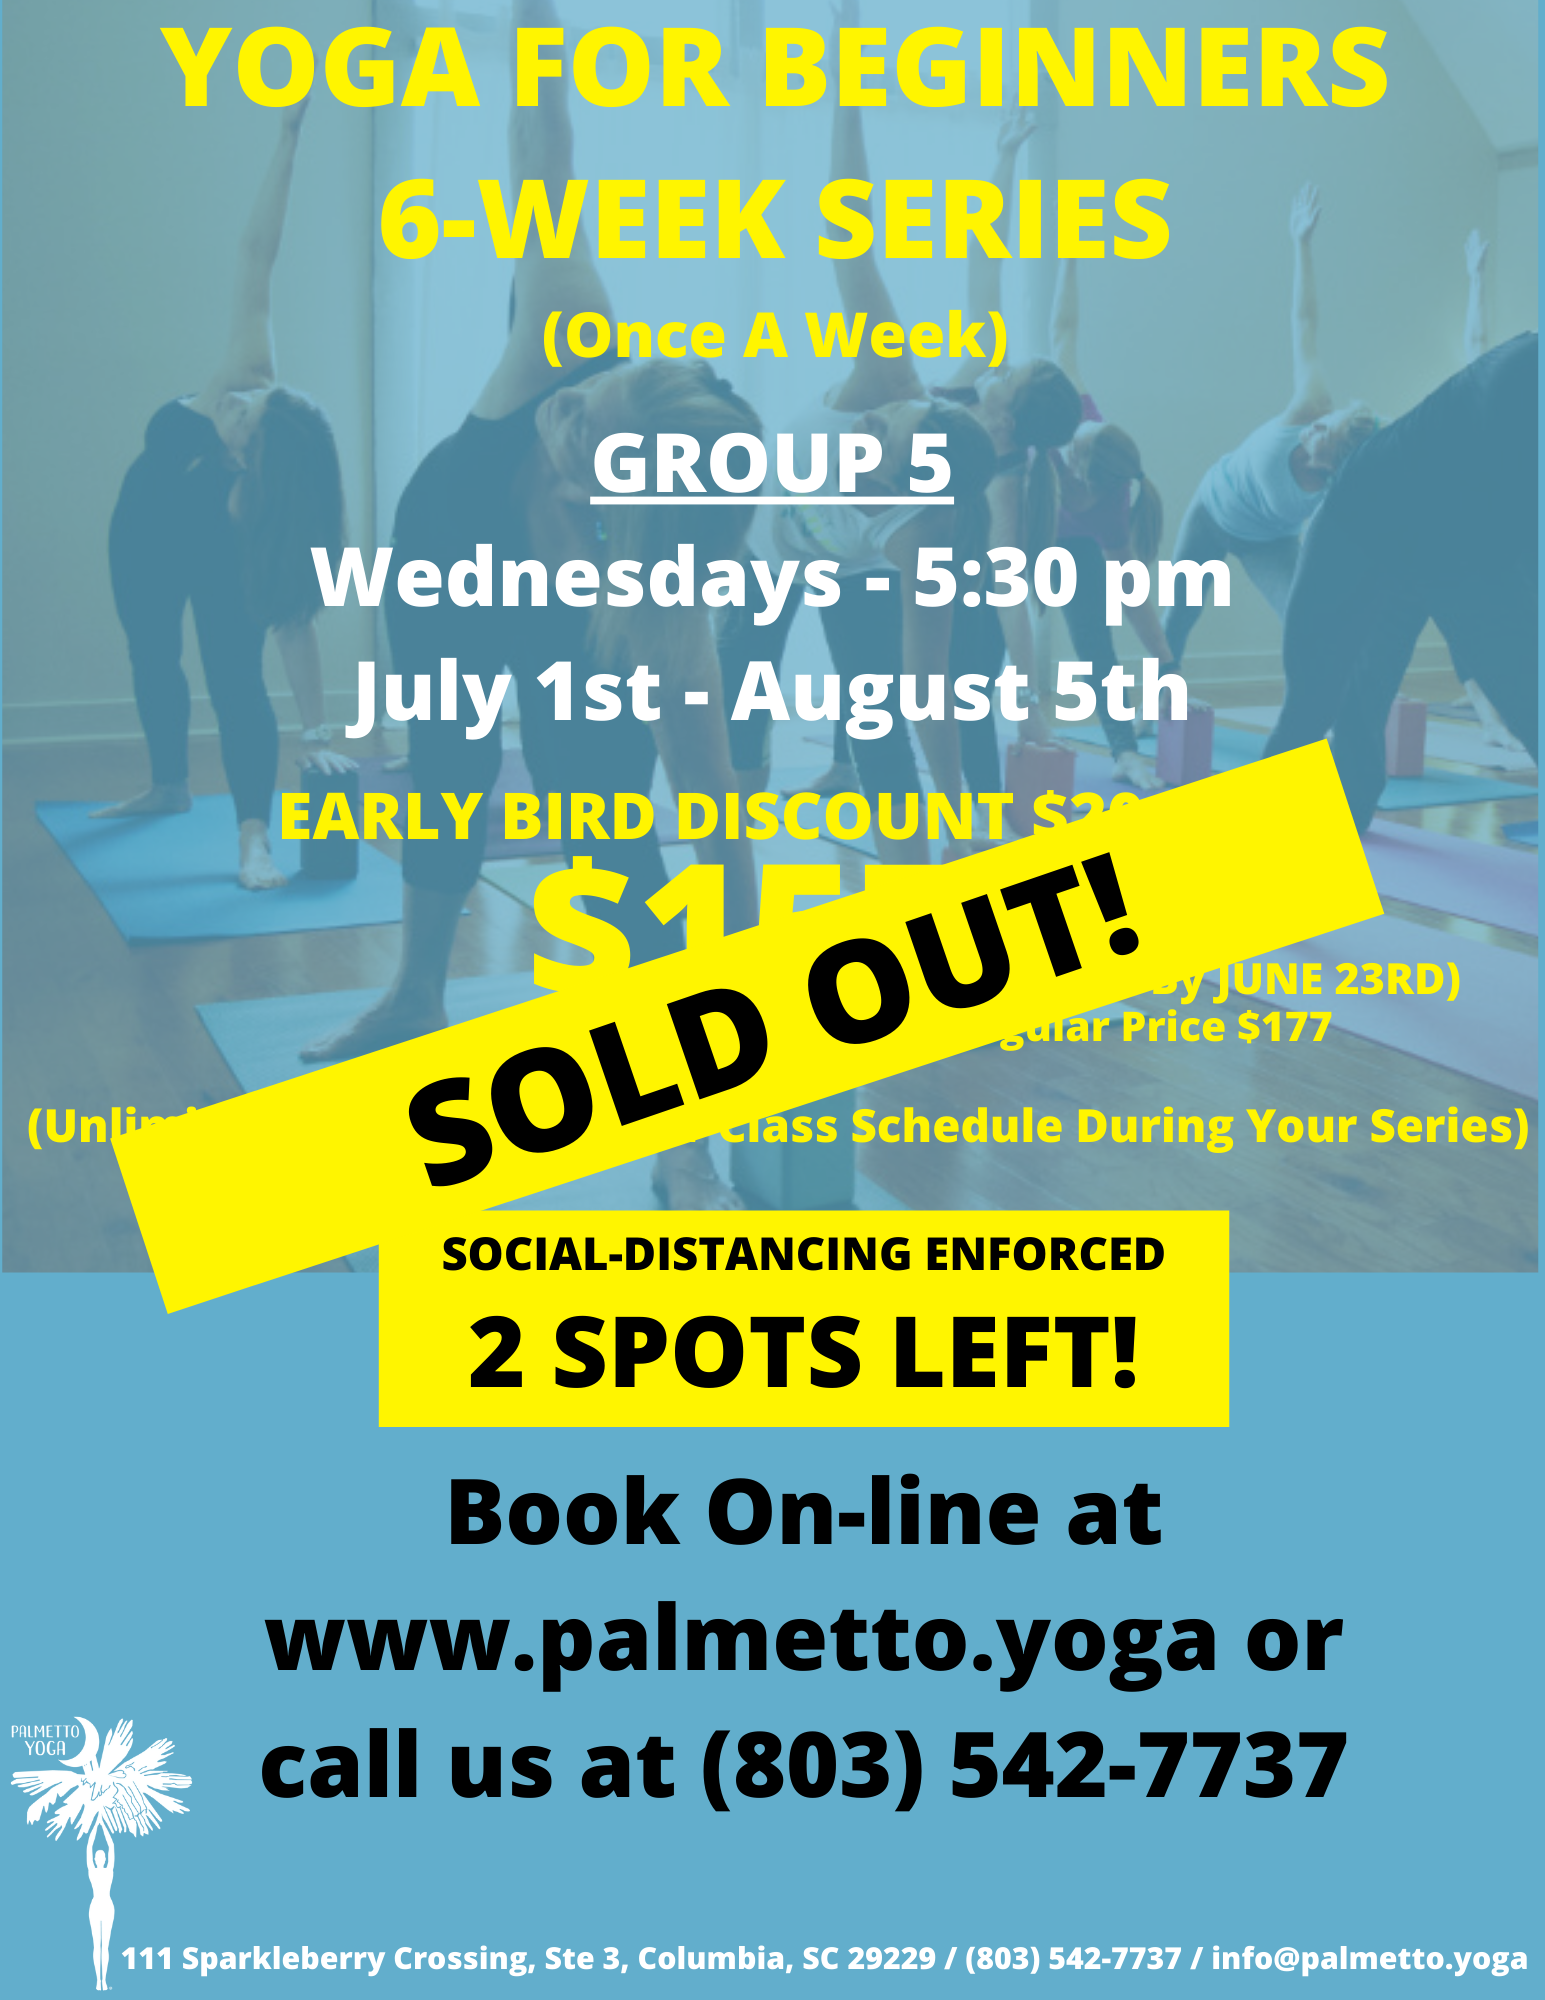 SOLD OUT - YOGA FOR BEGINNERS 6-WEEK SER